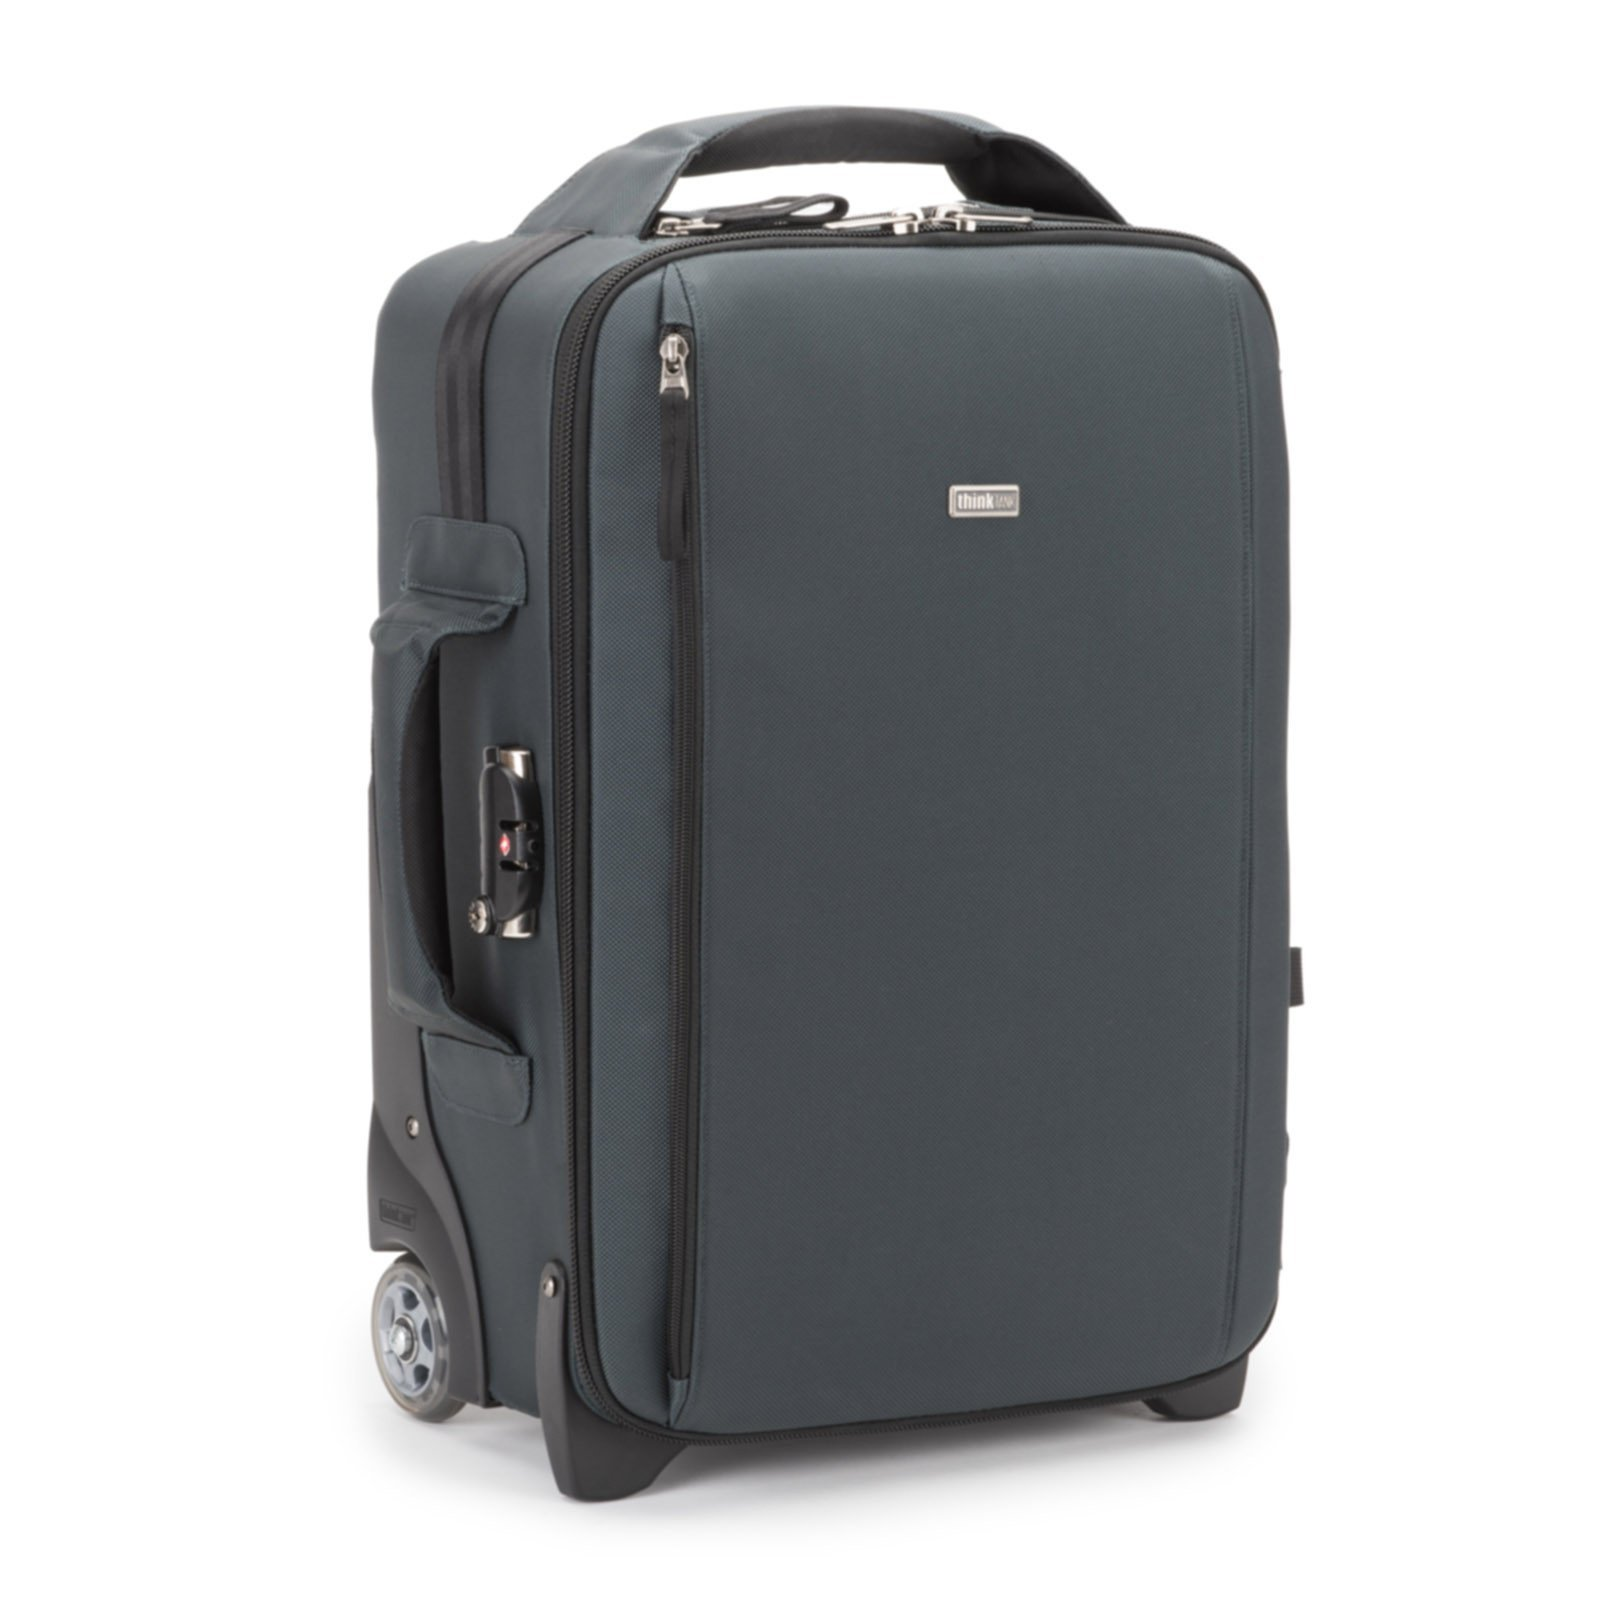 Think Tank Photo Video Transport 18 Carry-On Case (Pacific Slate) by Think Tank